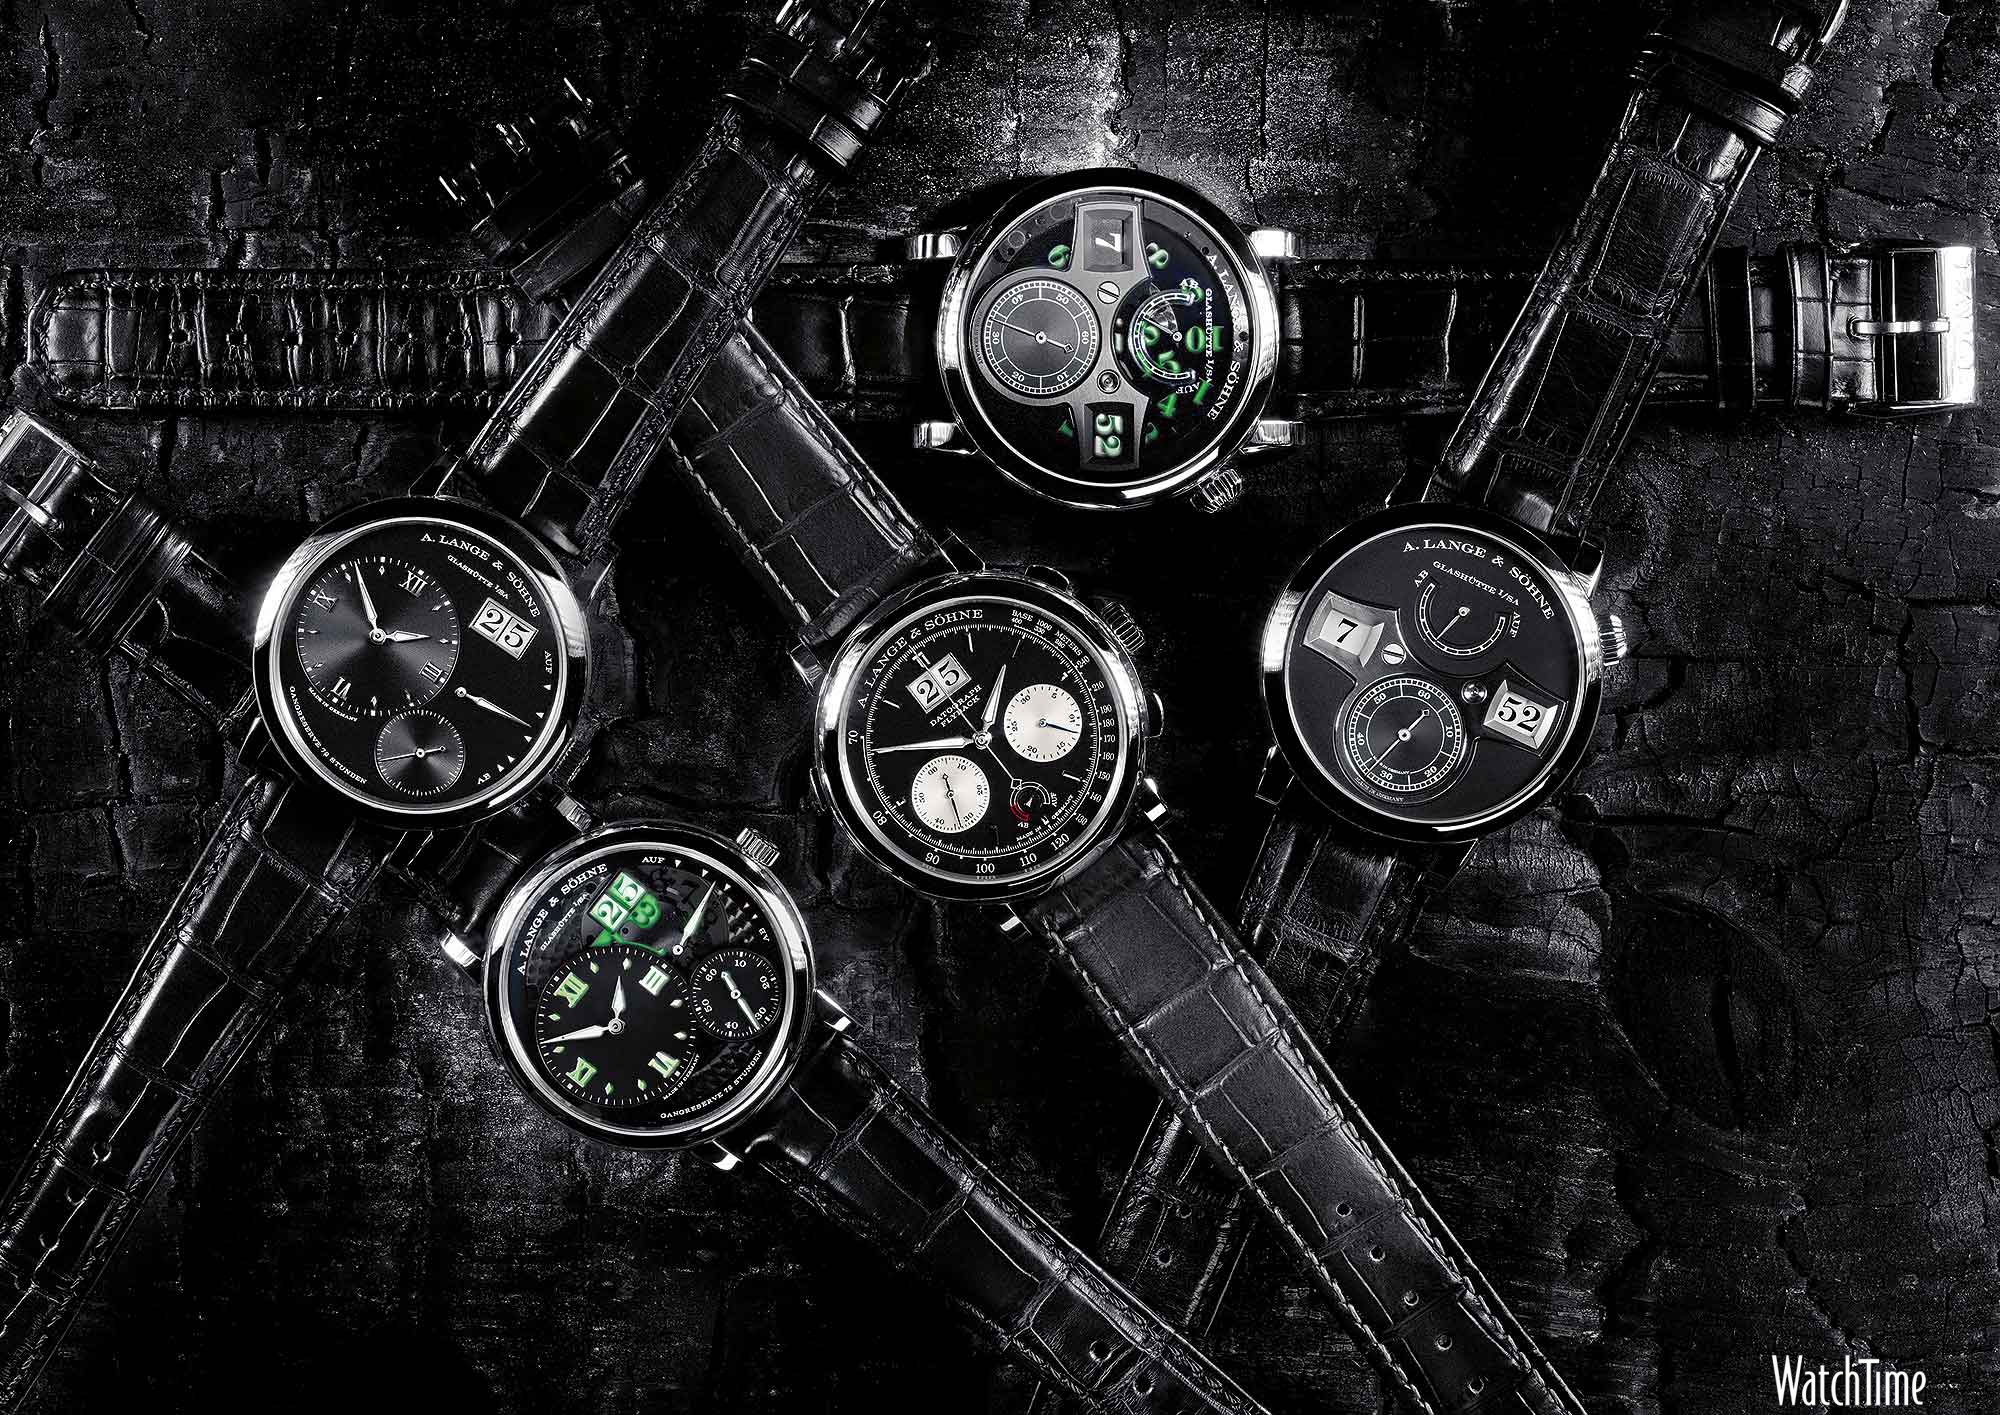 Luxury watches wallpaper - A Lange Sohne Collection 2013 Black